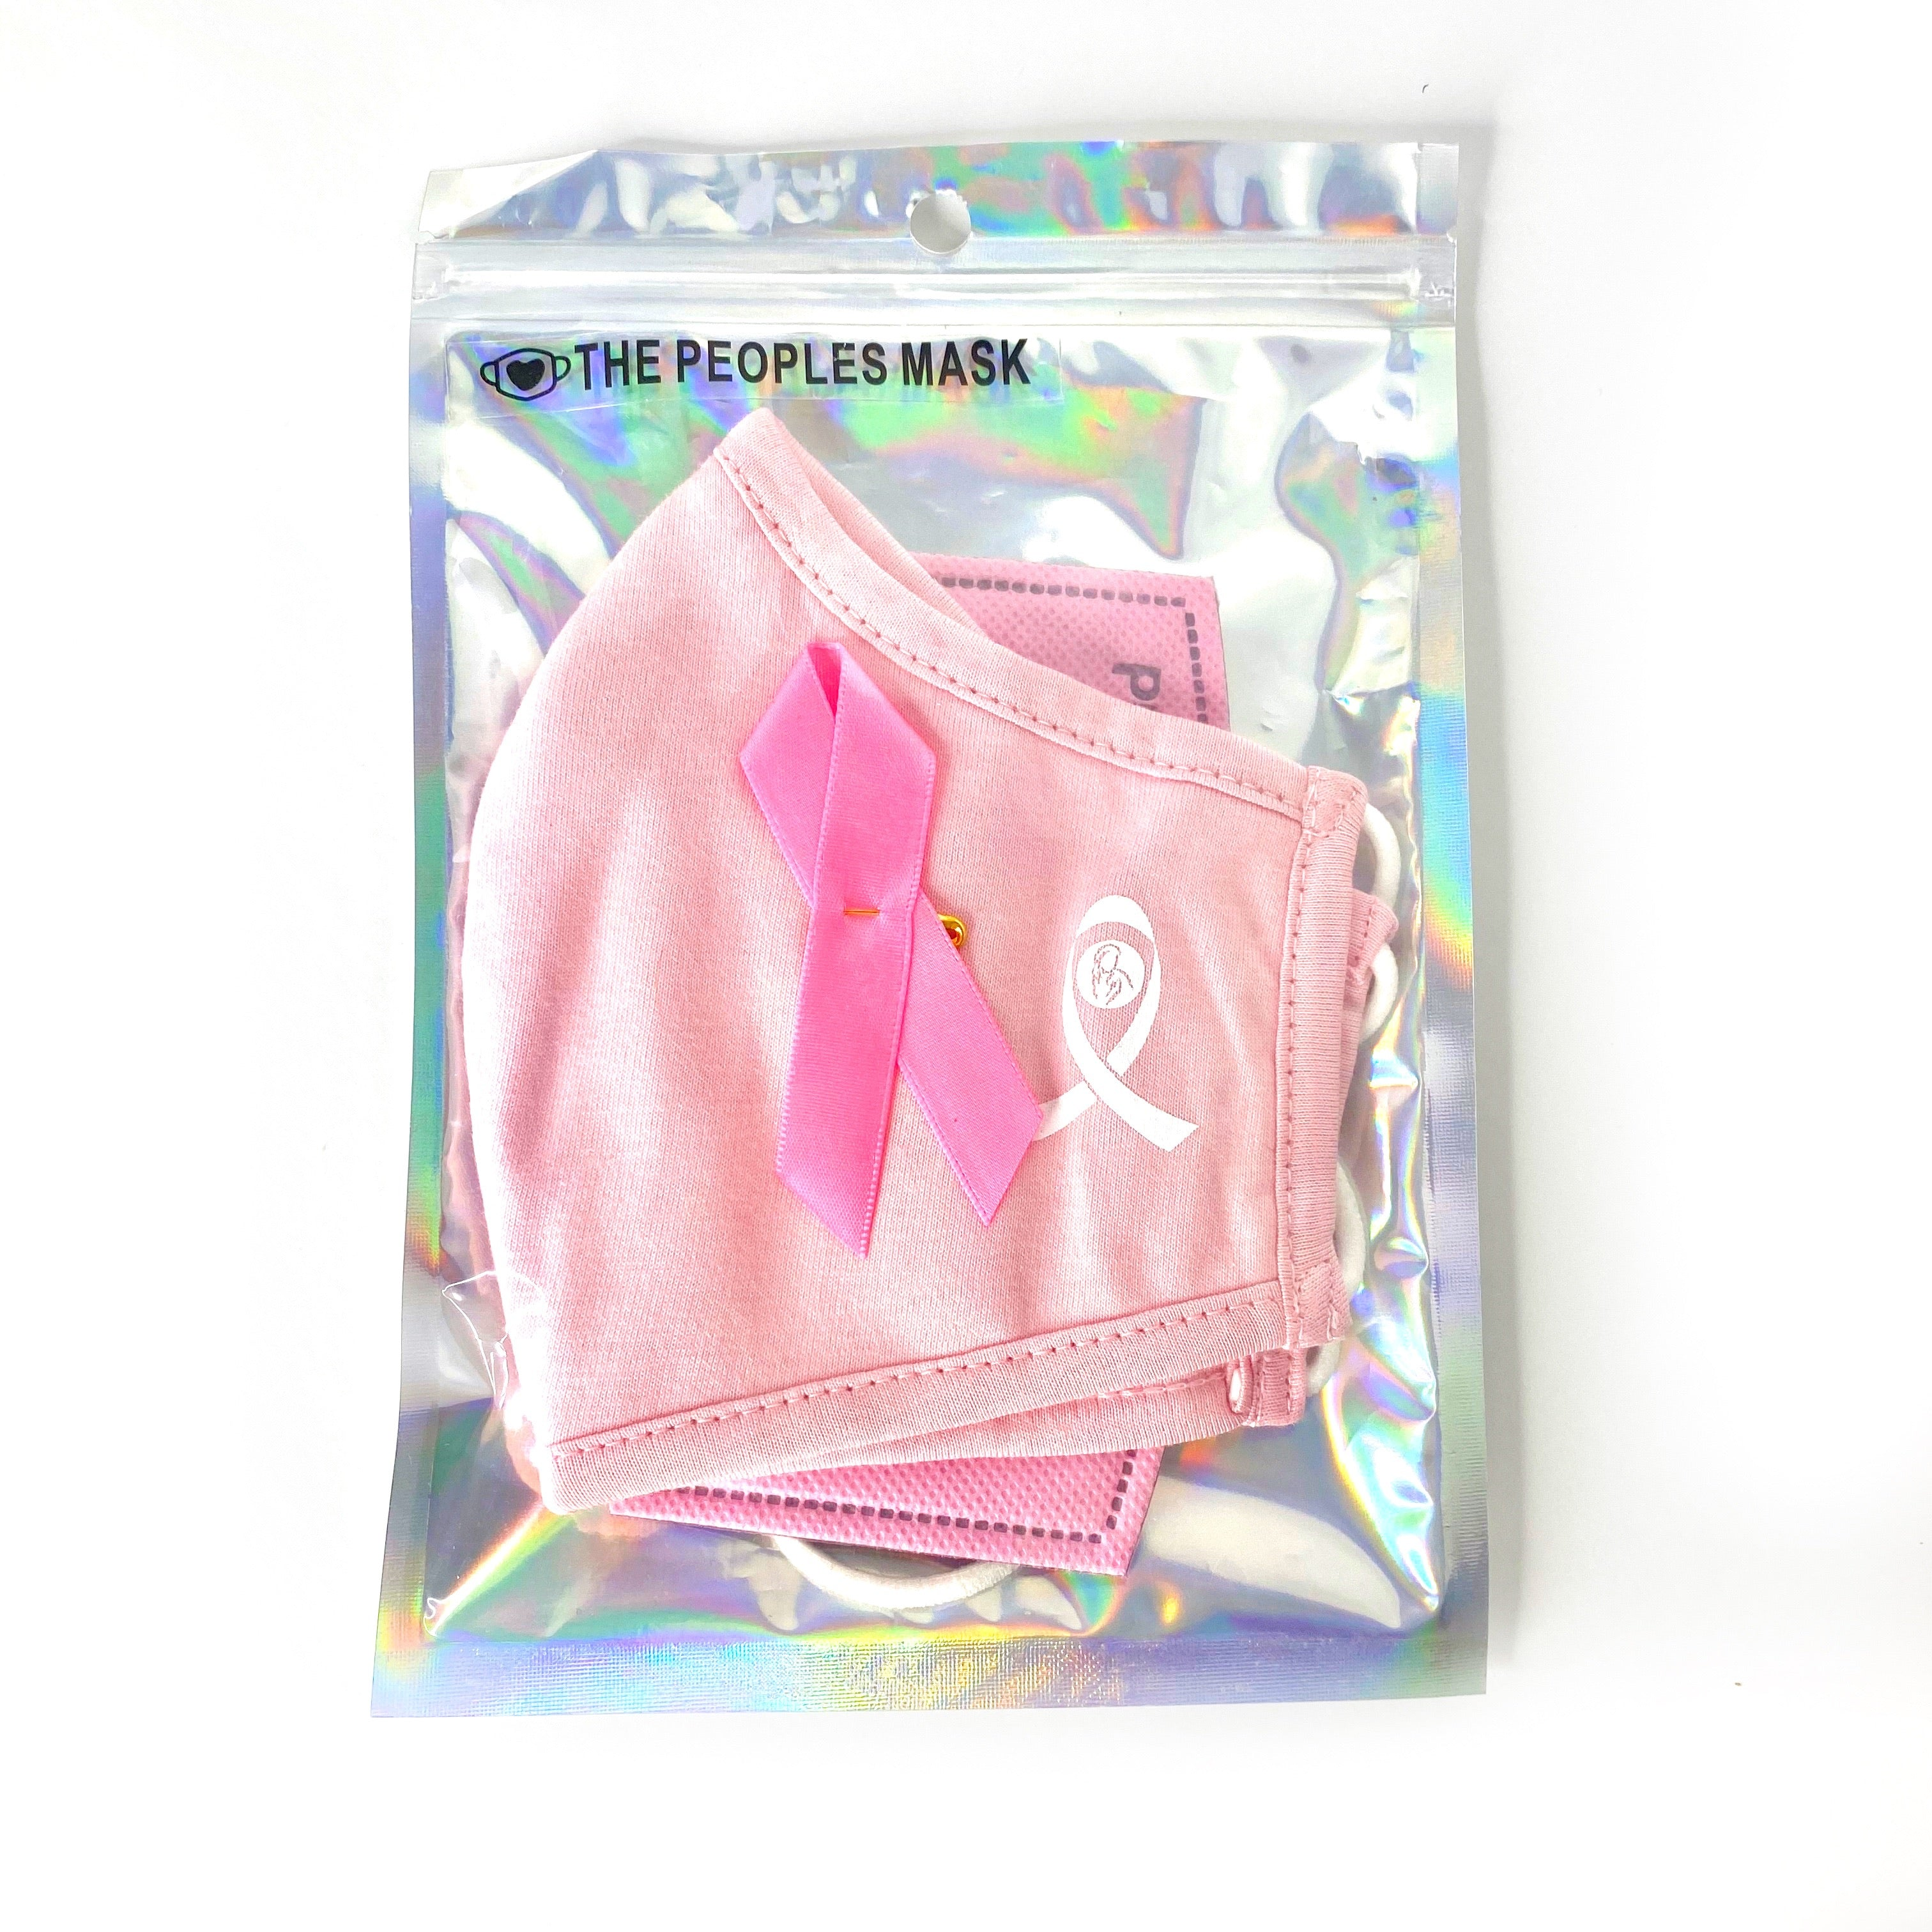 Breast cancer pink ribbon face mask set - The Peoples Mask